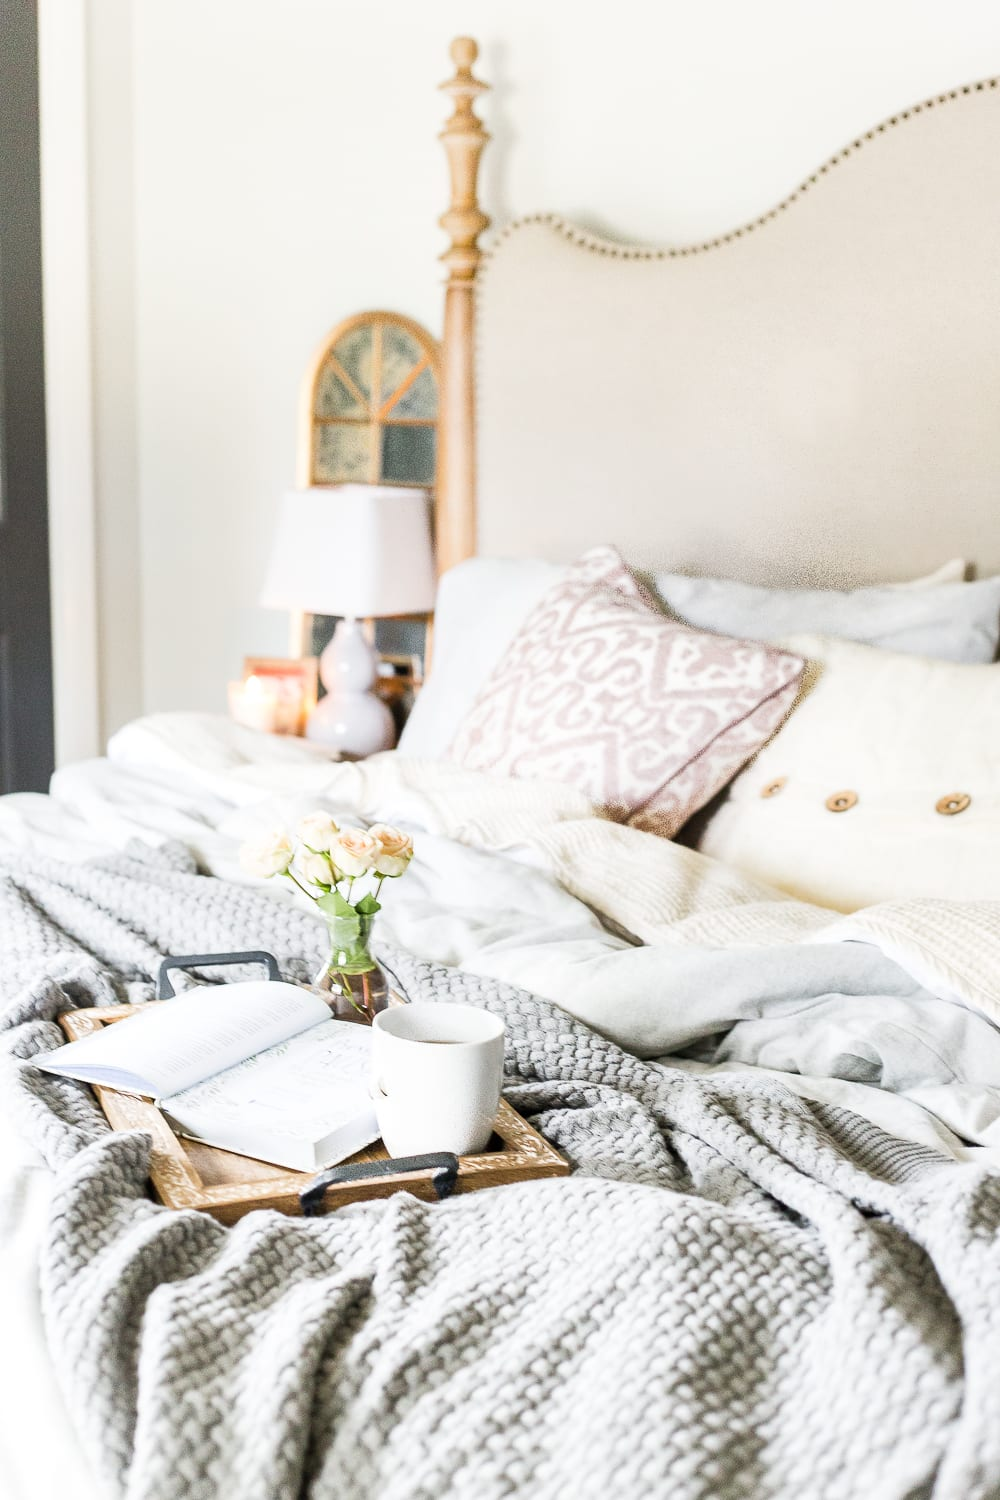 7 Ways I Relieve Anxiety at Bedtime | blesserhouse.com - Tips for relieving stress and anxiety with bedtime rituals, decorating advice, and favorite products that work to help you unwind each day. #cozyliving #bedroom #anxiety #stressrelief #lifestyle bedroom tray